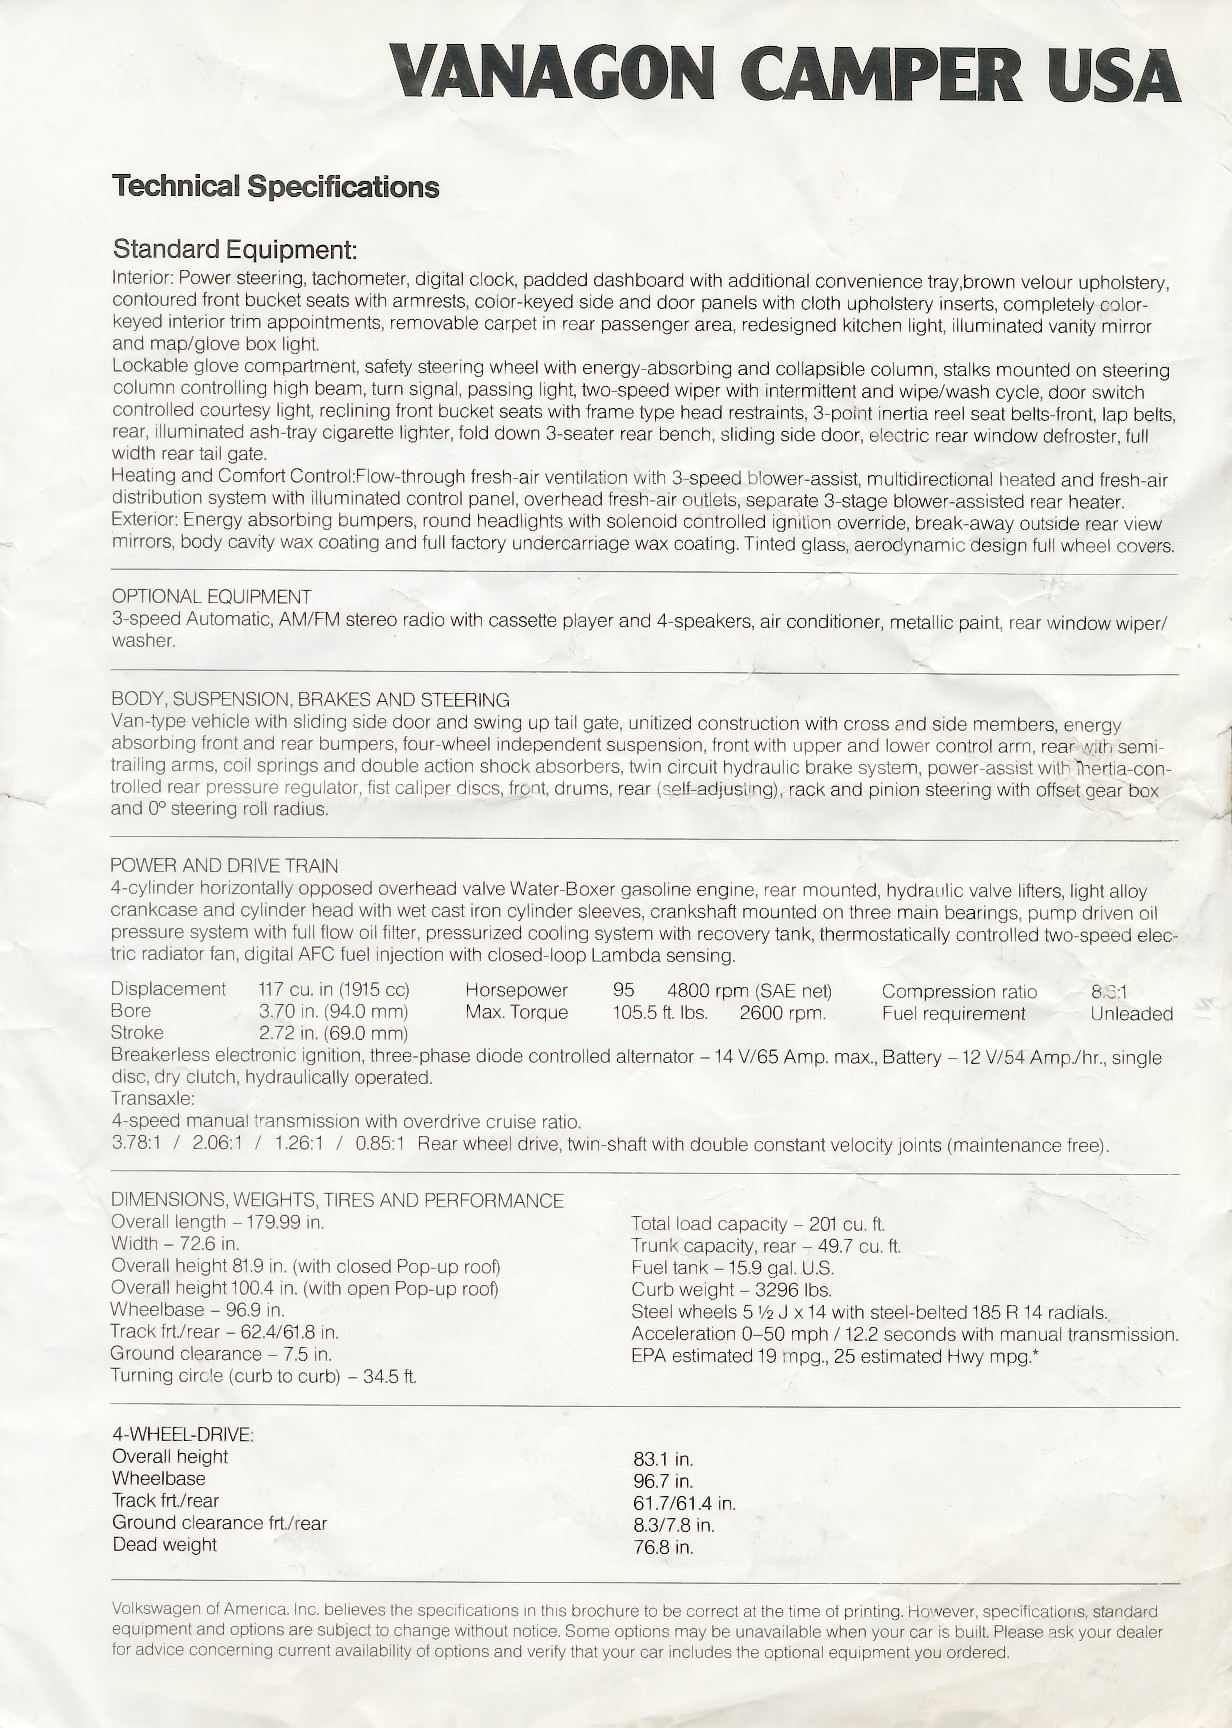 Vanagon View Topic Weight 81 Subaru Gl Fuel Filter Location The Vw Brochure At This Link